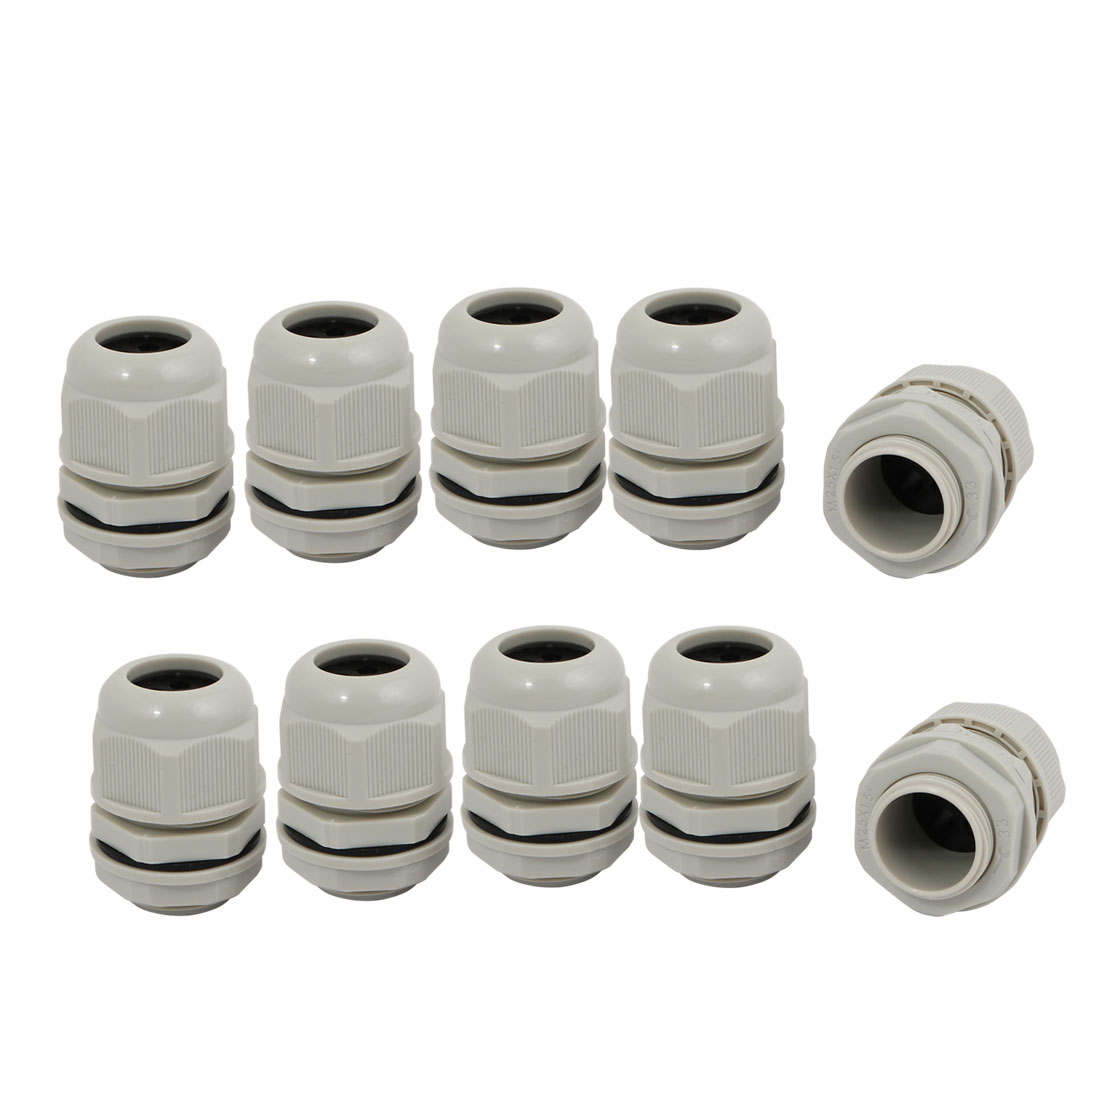 10 Pcs M25 x 1.5mm Nylon 4 Holes Cable Gland Connector Joint Gray MA25-H4-05